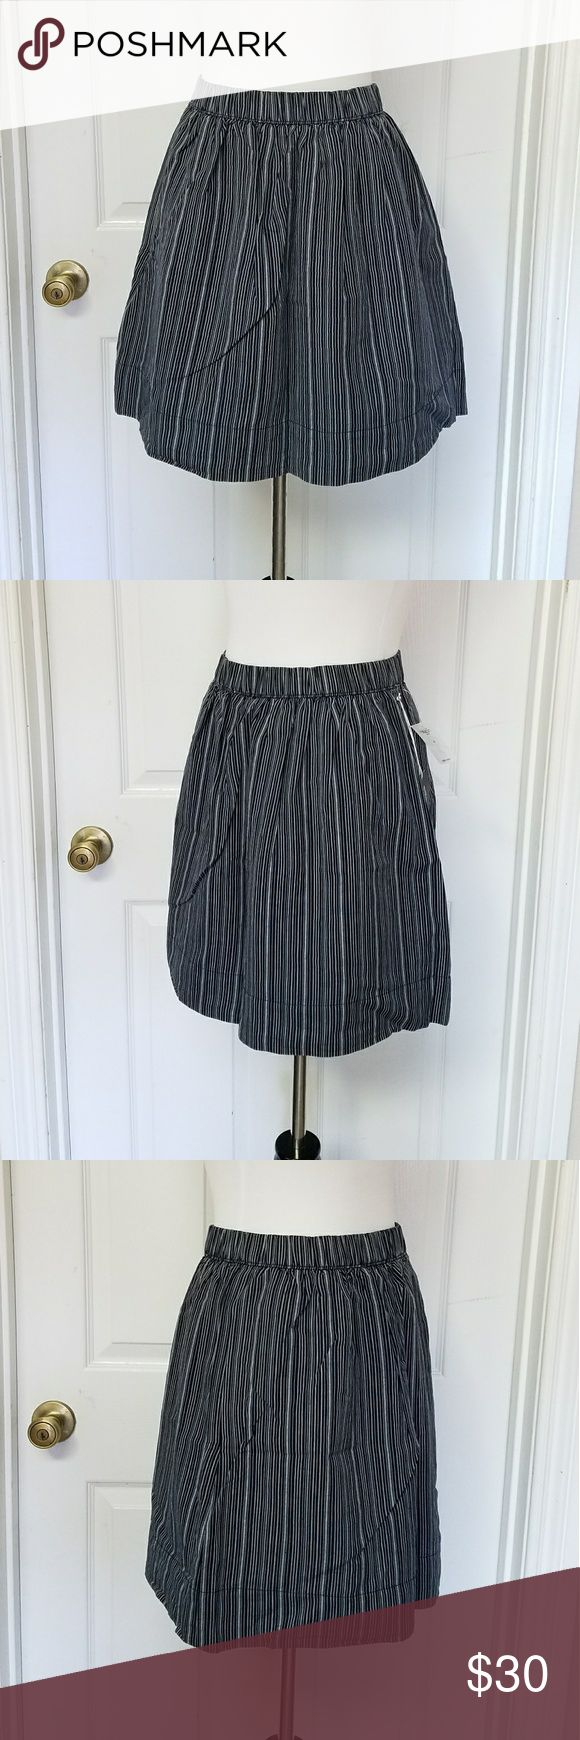 """NWT Striped GAP Skirt NWT Blue and white striped skirt by GAP with elastic waistband and side pockets. Fully lined. Shell is 86% cotton 14% linen and lining is 100% cotton. Laying flat waist measures 13 1/2"""" unstretched and length measures 17"""". GAP Skirts Circle & Skater"""